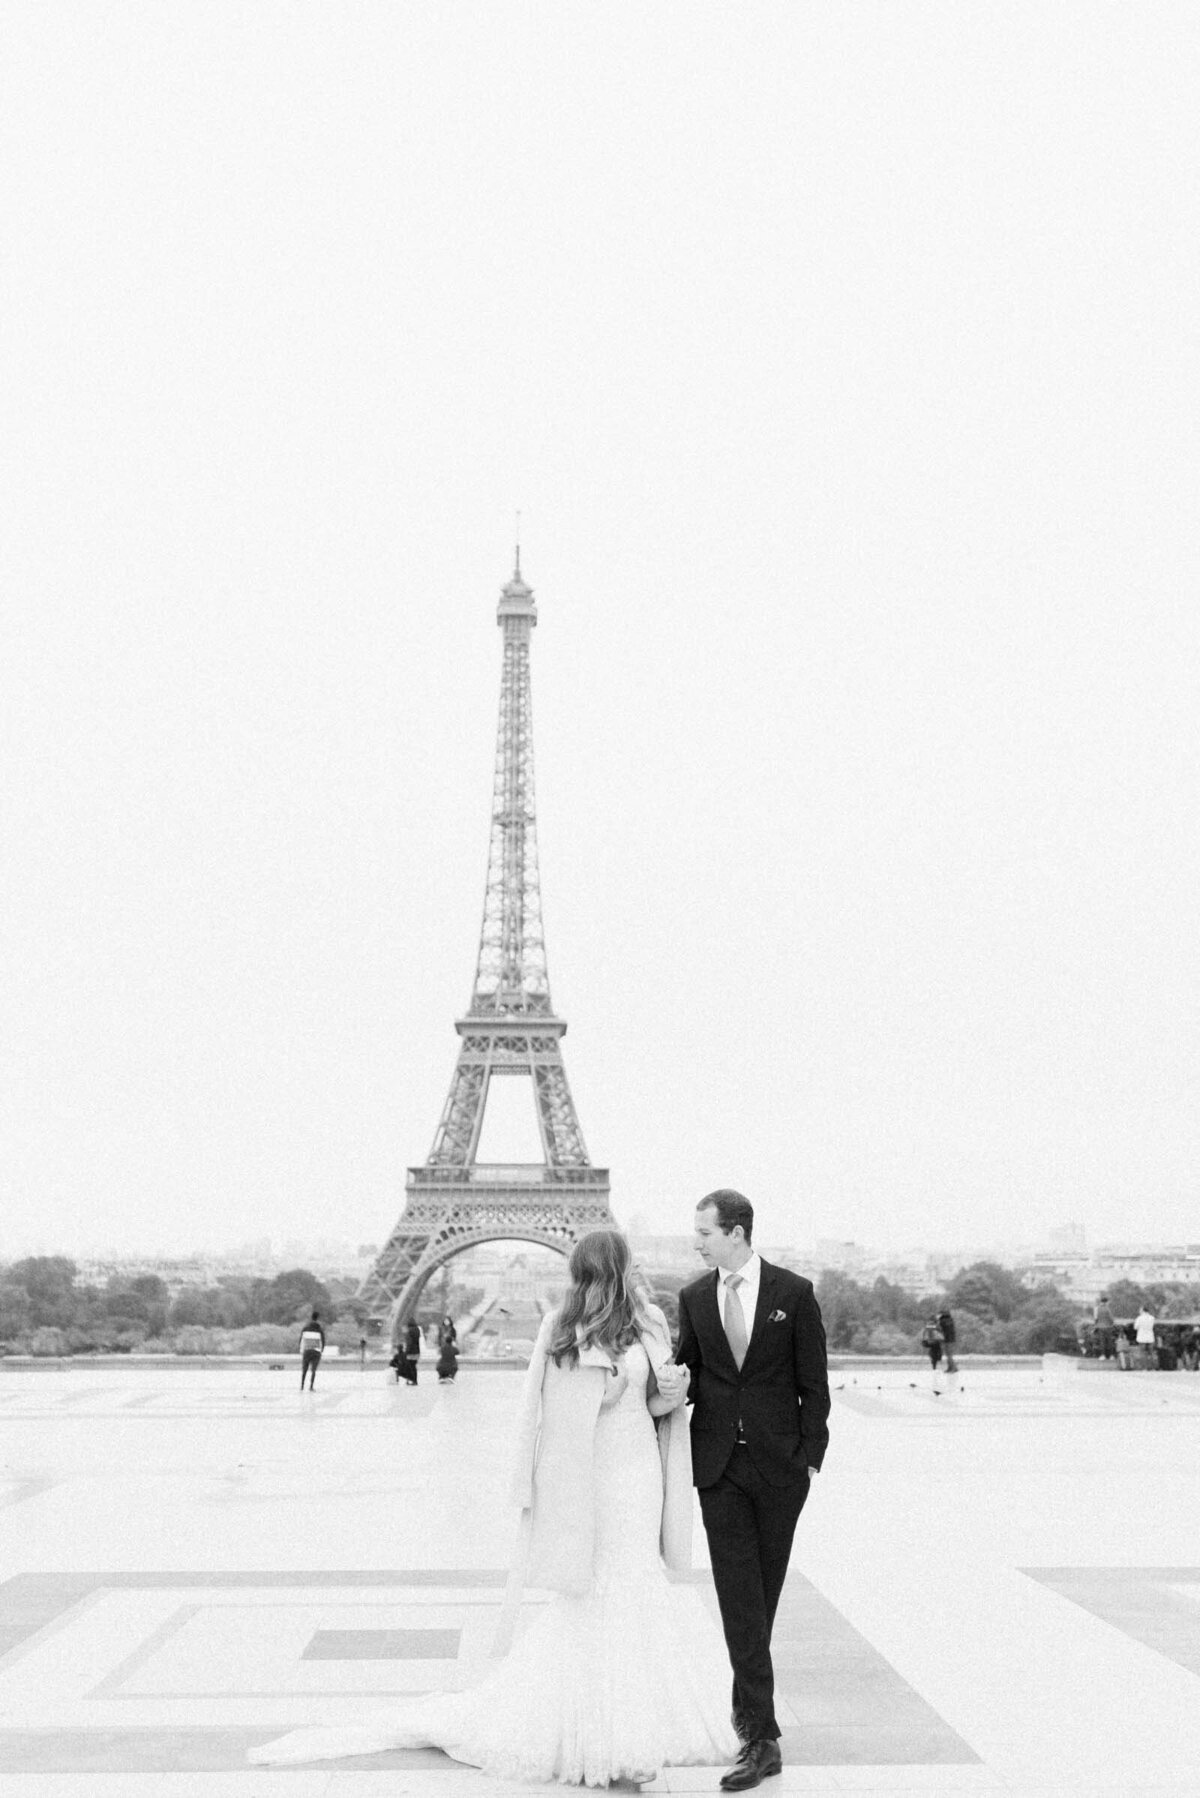 marcelaploskerphotography-paris_wedding-80